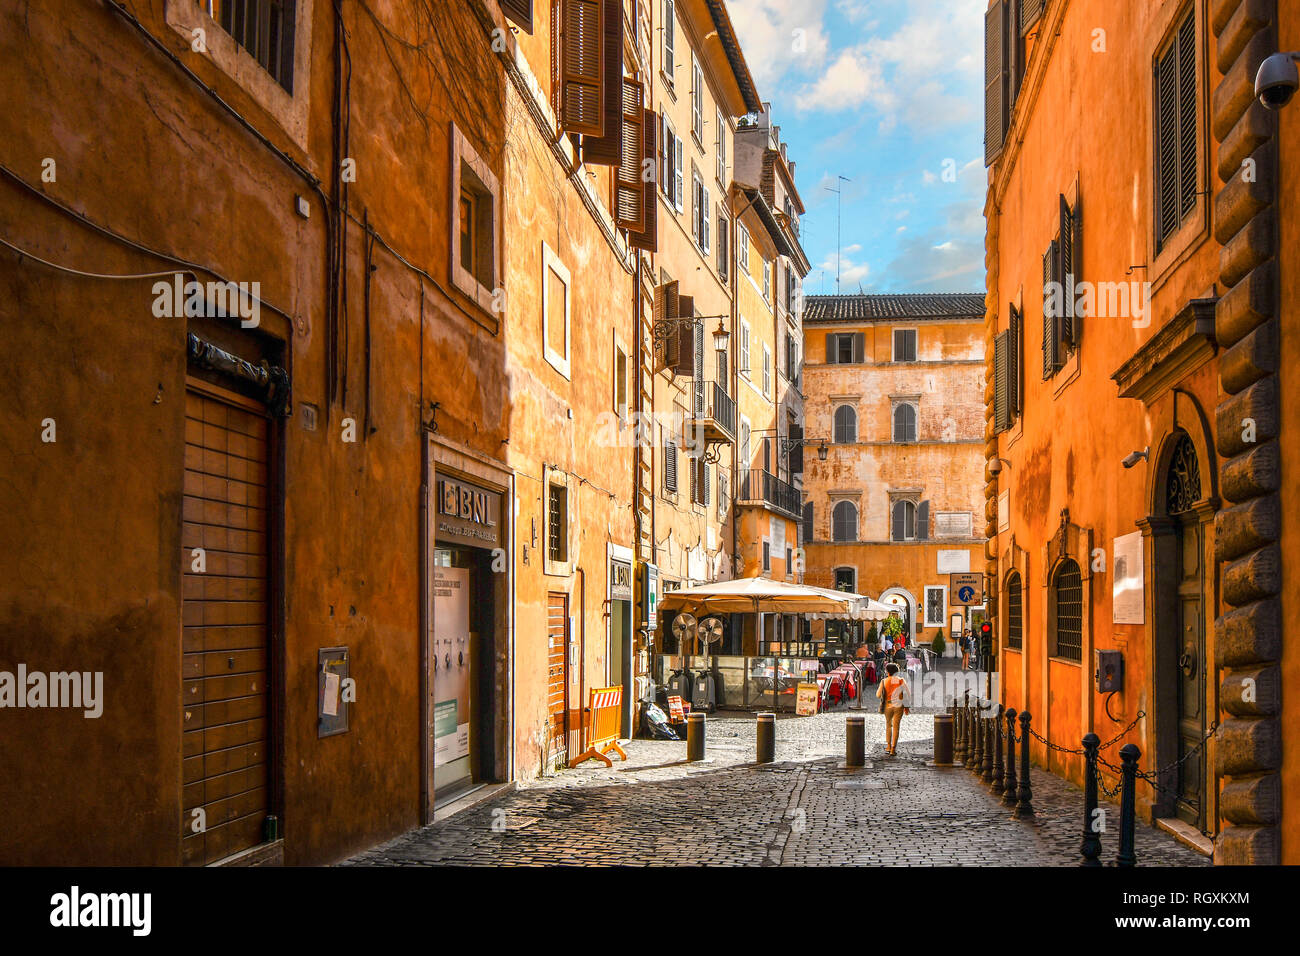 Rome, Italy - September 30 2018: A woman walks through an empty alley towards a sidewalk cafe and small piazza in the historic center of Rome, Italy Stock Photo